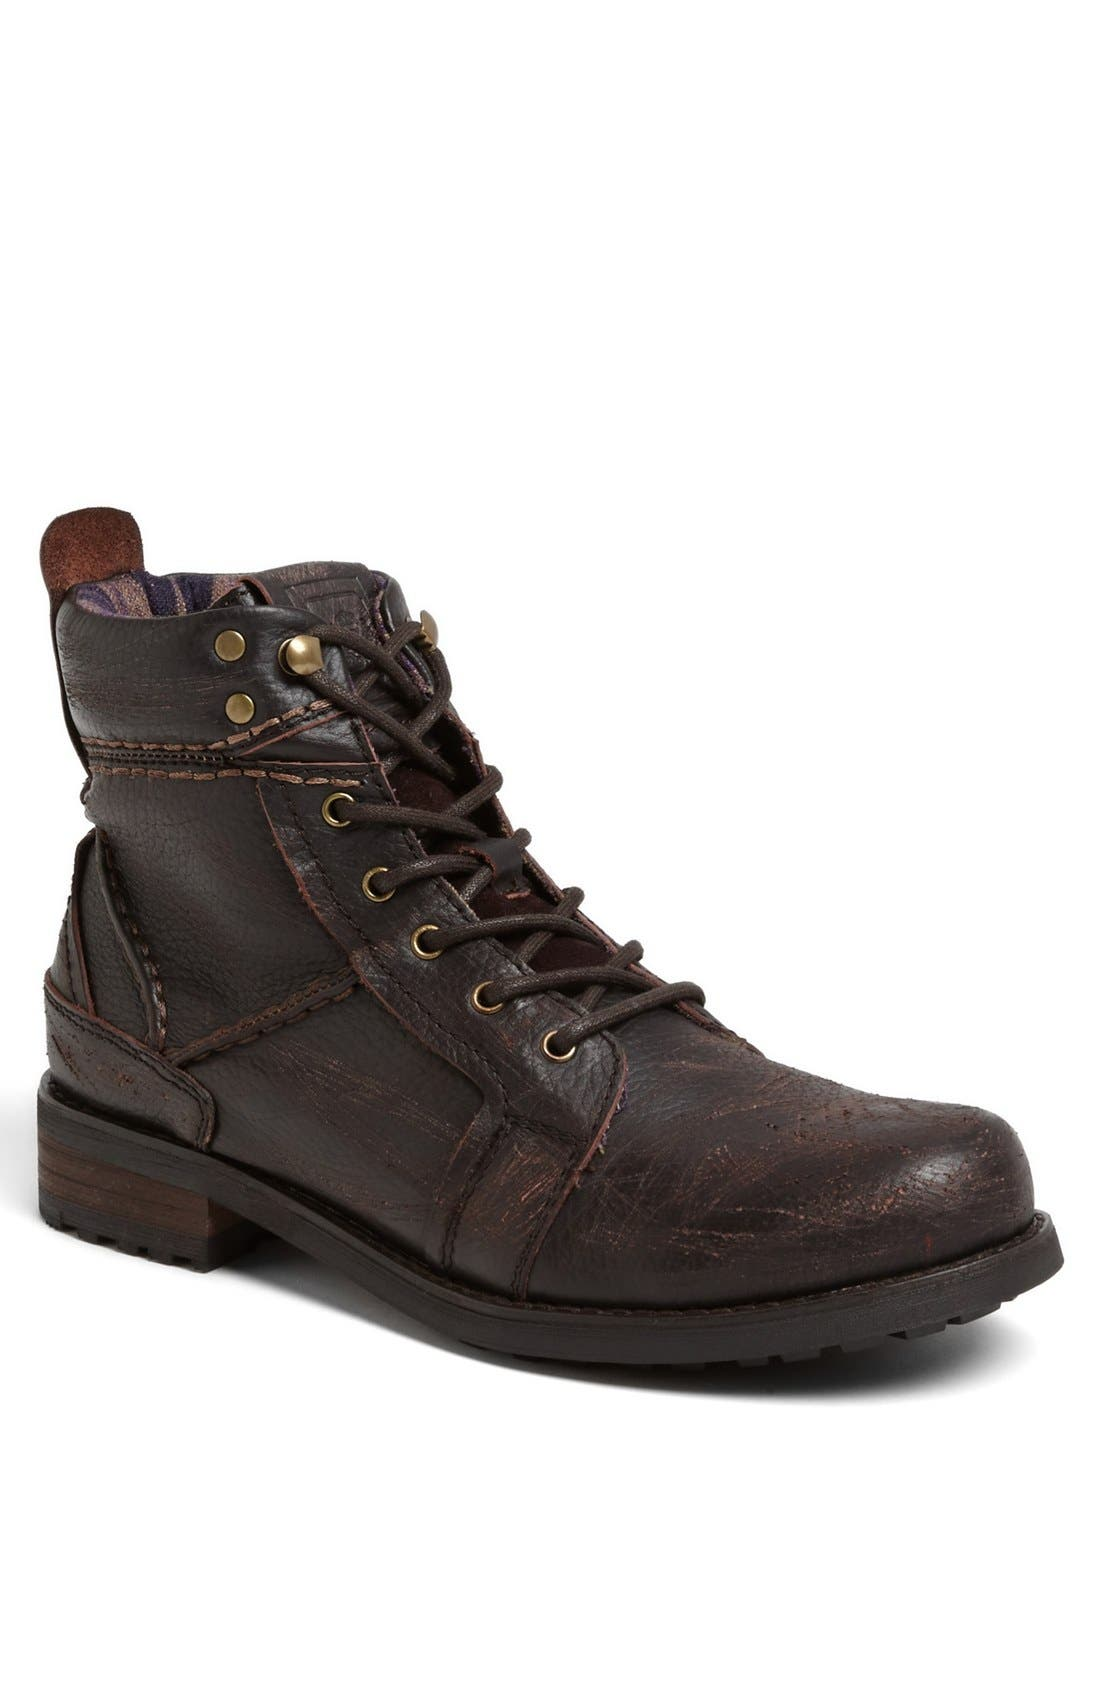 Alternate Image 1 Selected - ZIGIny 'Catcher' Plain Toe Boot